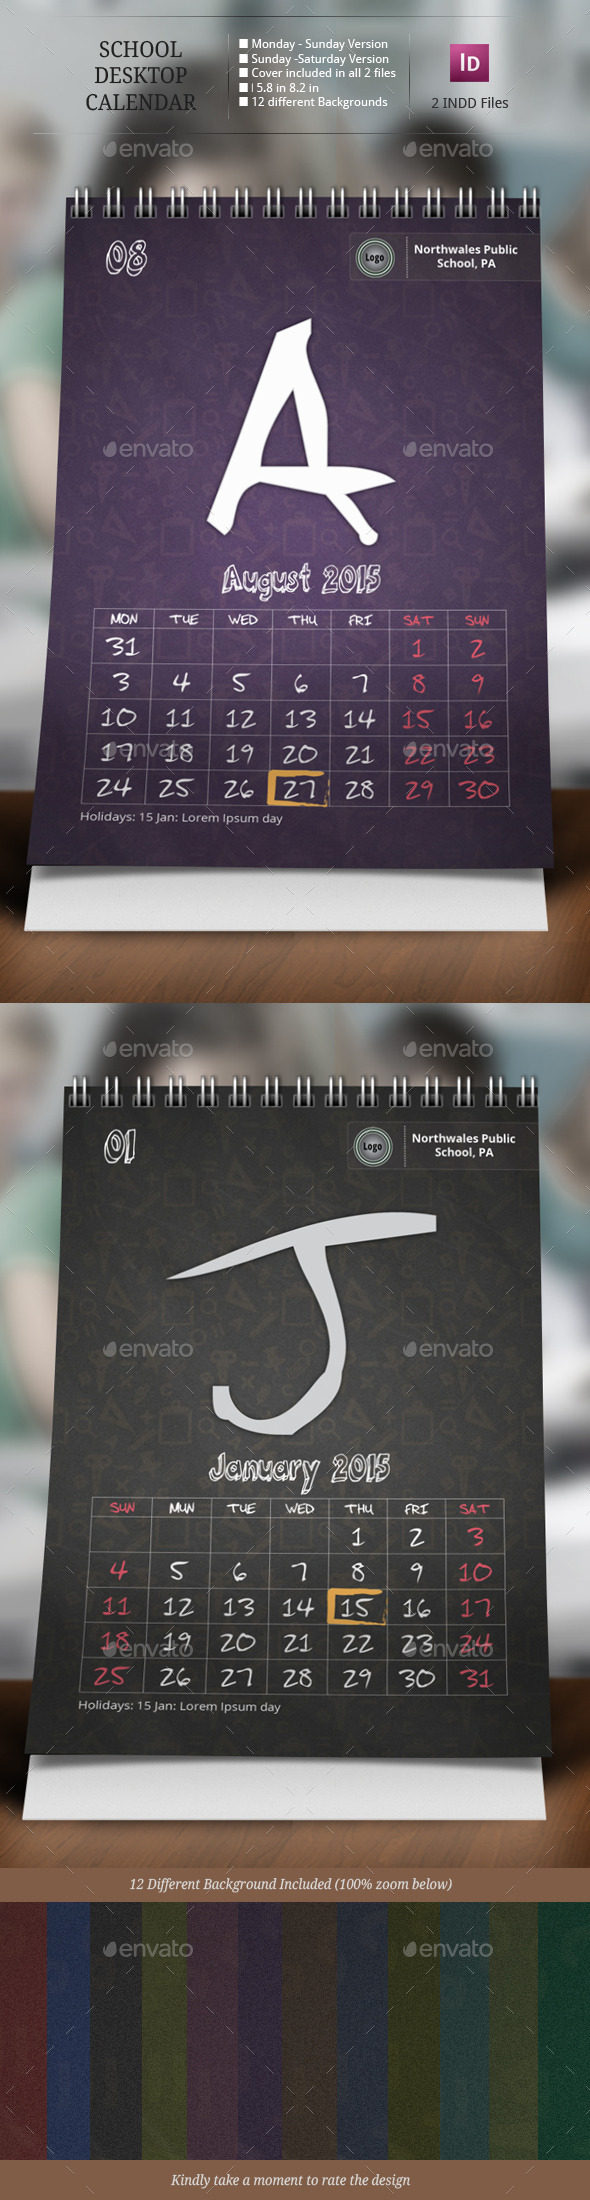 School Desk Calendar Templates - Calendars Stationery